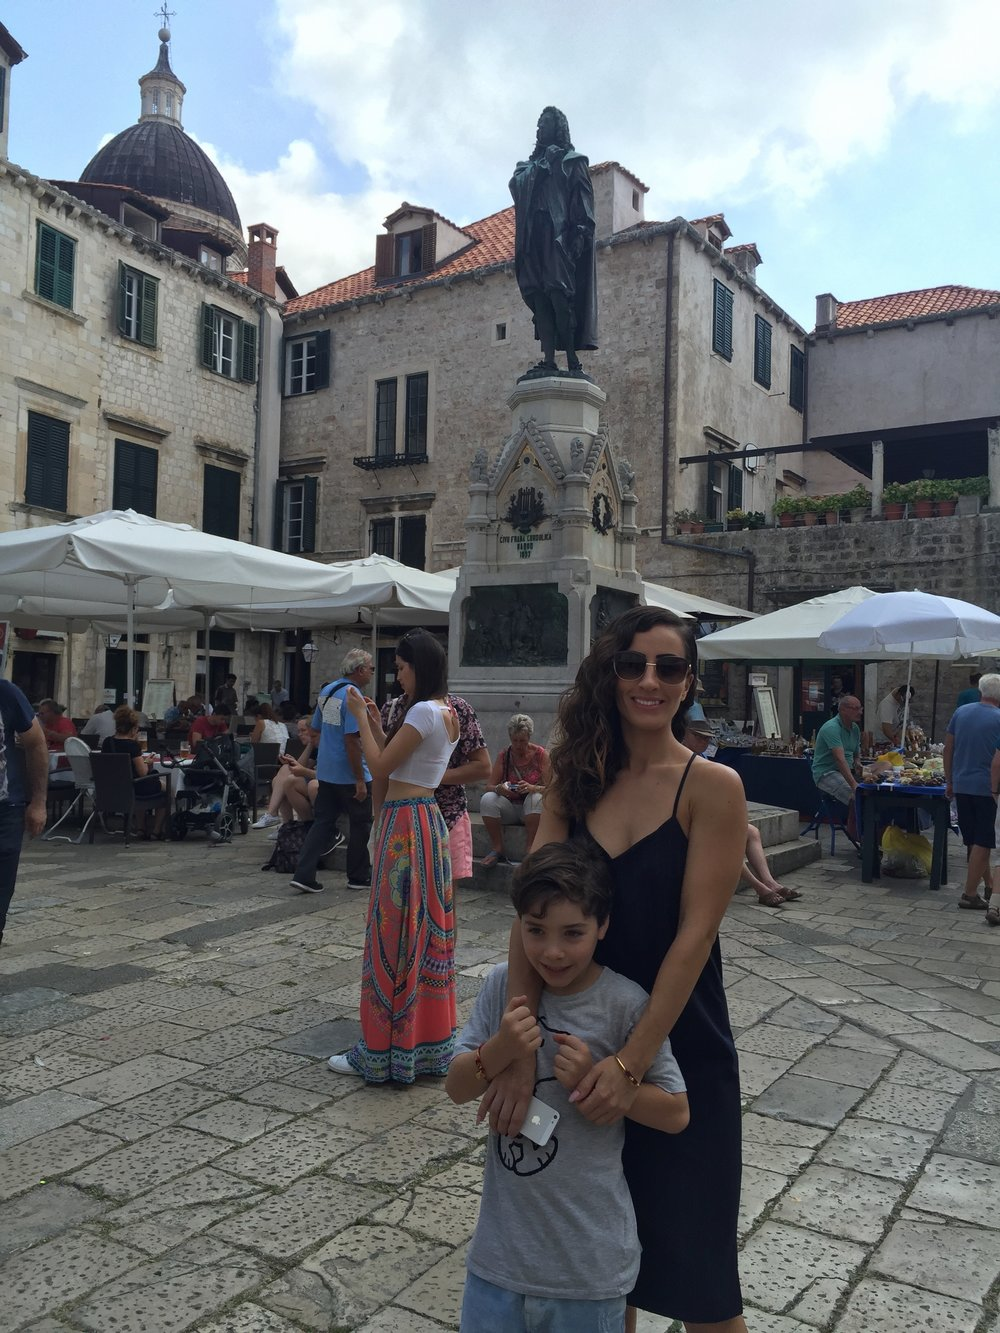 dubrovnik-fashion-blogger-travel-outfitoftheday-croatia-streetstyle